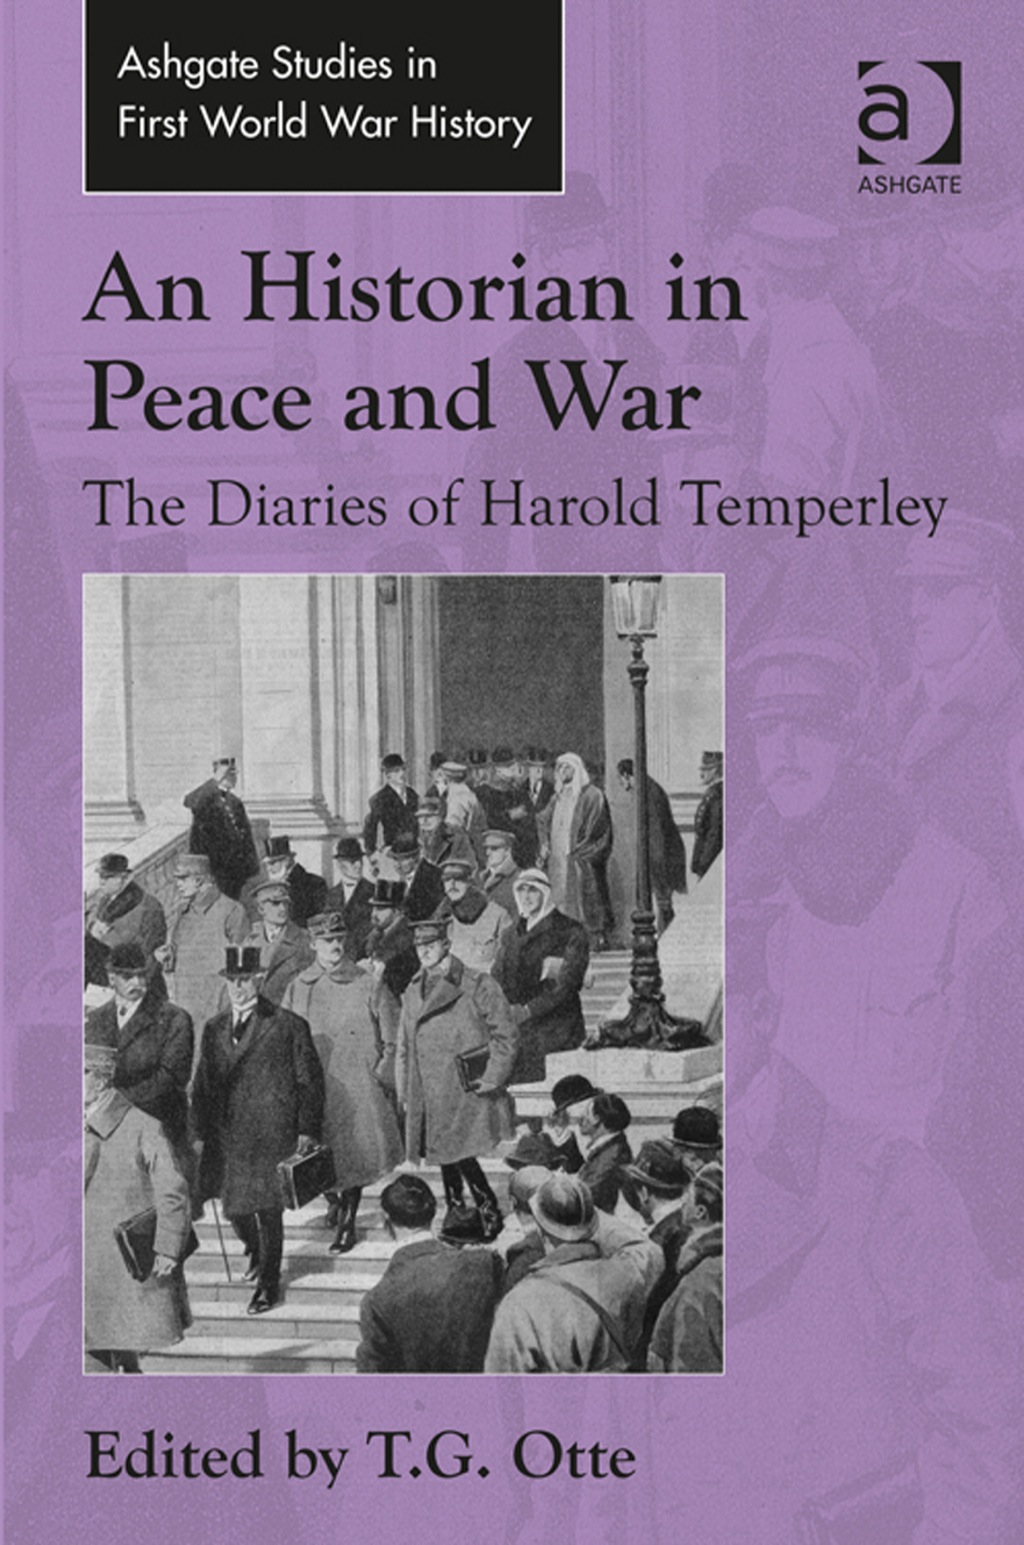 An Historian in Peace and War: The Diaries of Harold Temperley (eBook Rental)